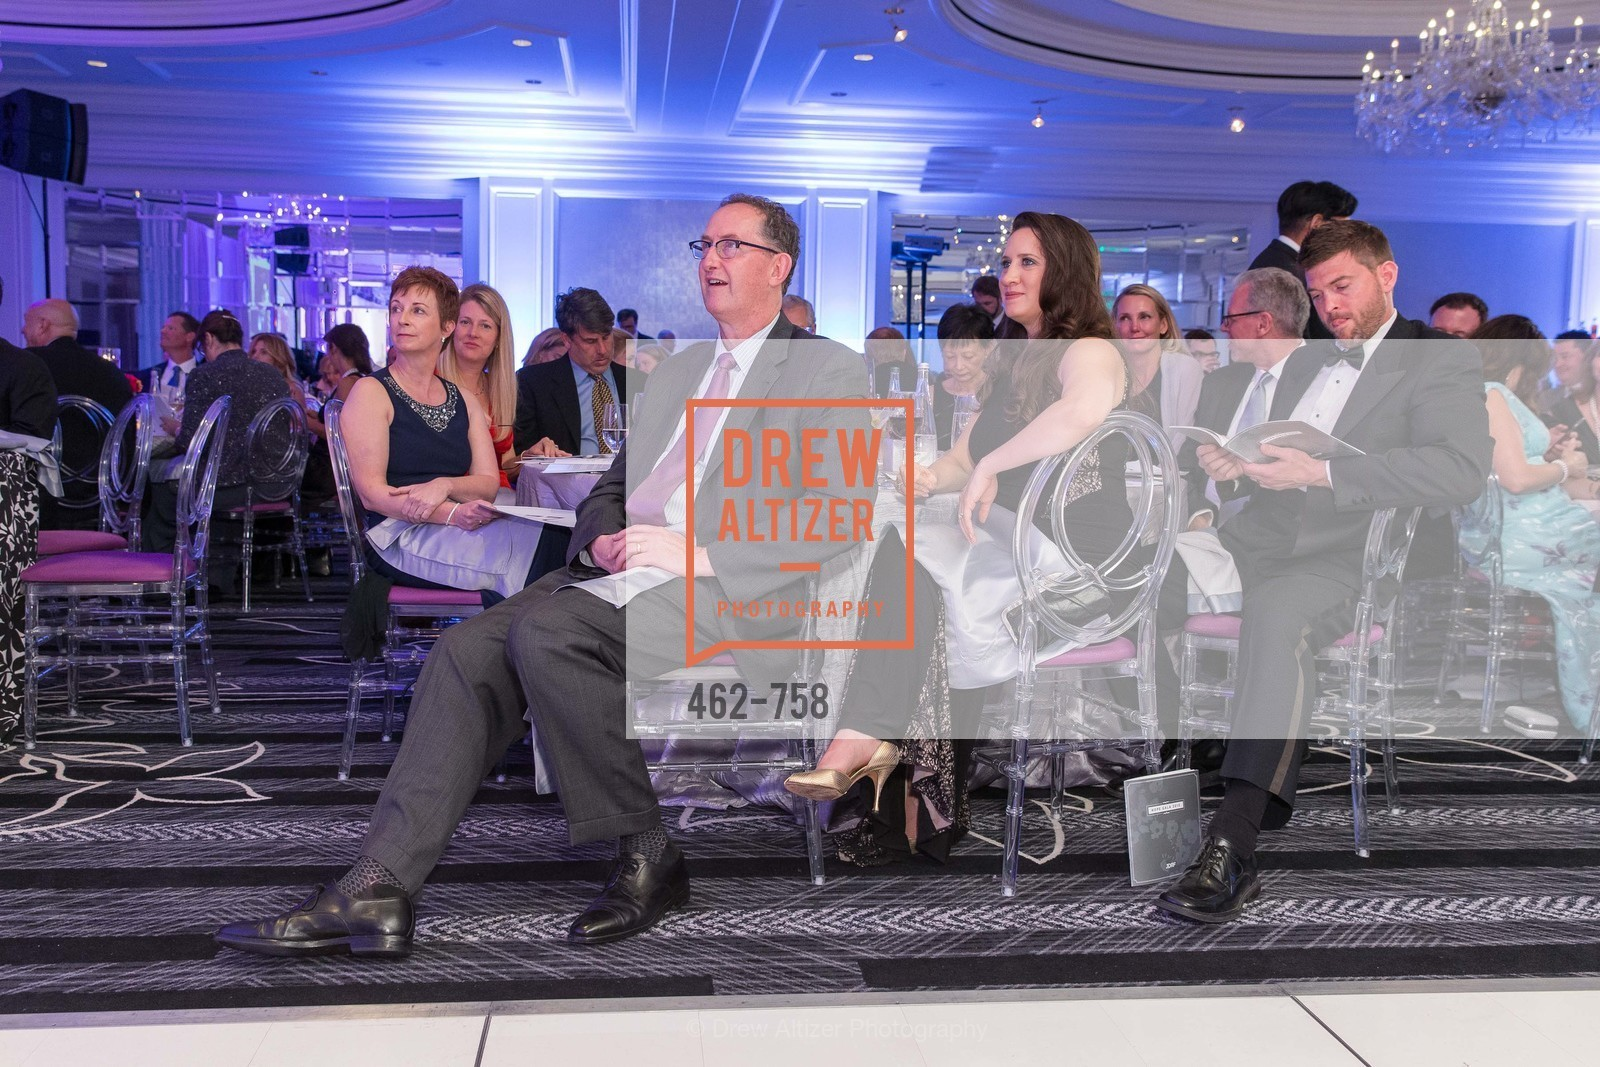 Extras, JUVENILE DIABETES RESEARCH FOUNDATION  Hope Gala, May 30th, 2015, Photo,Drew Altizer, Drew Altizer Photography, full-service event agency, private events, San Francisco photographer, photographer California